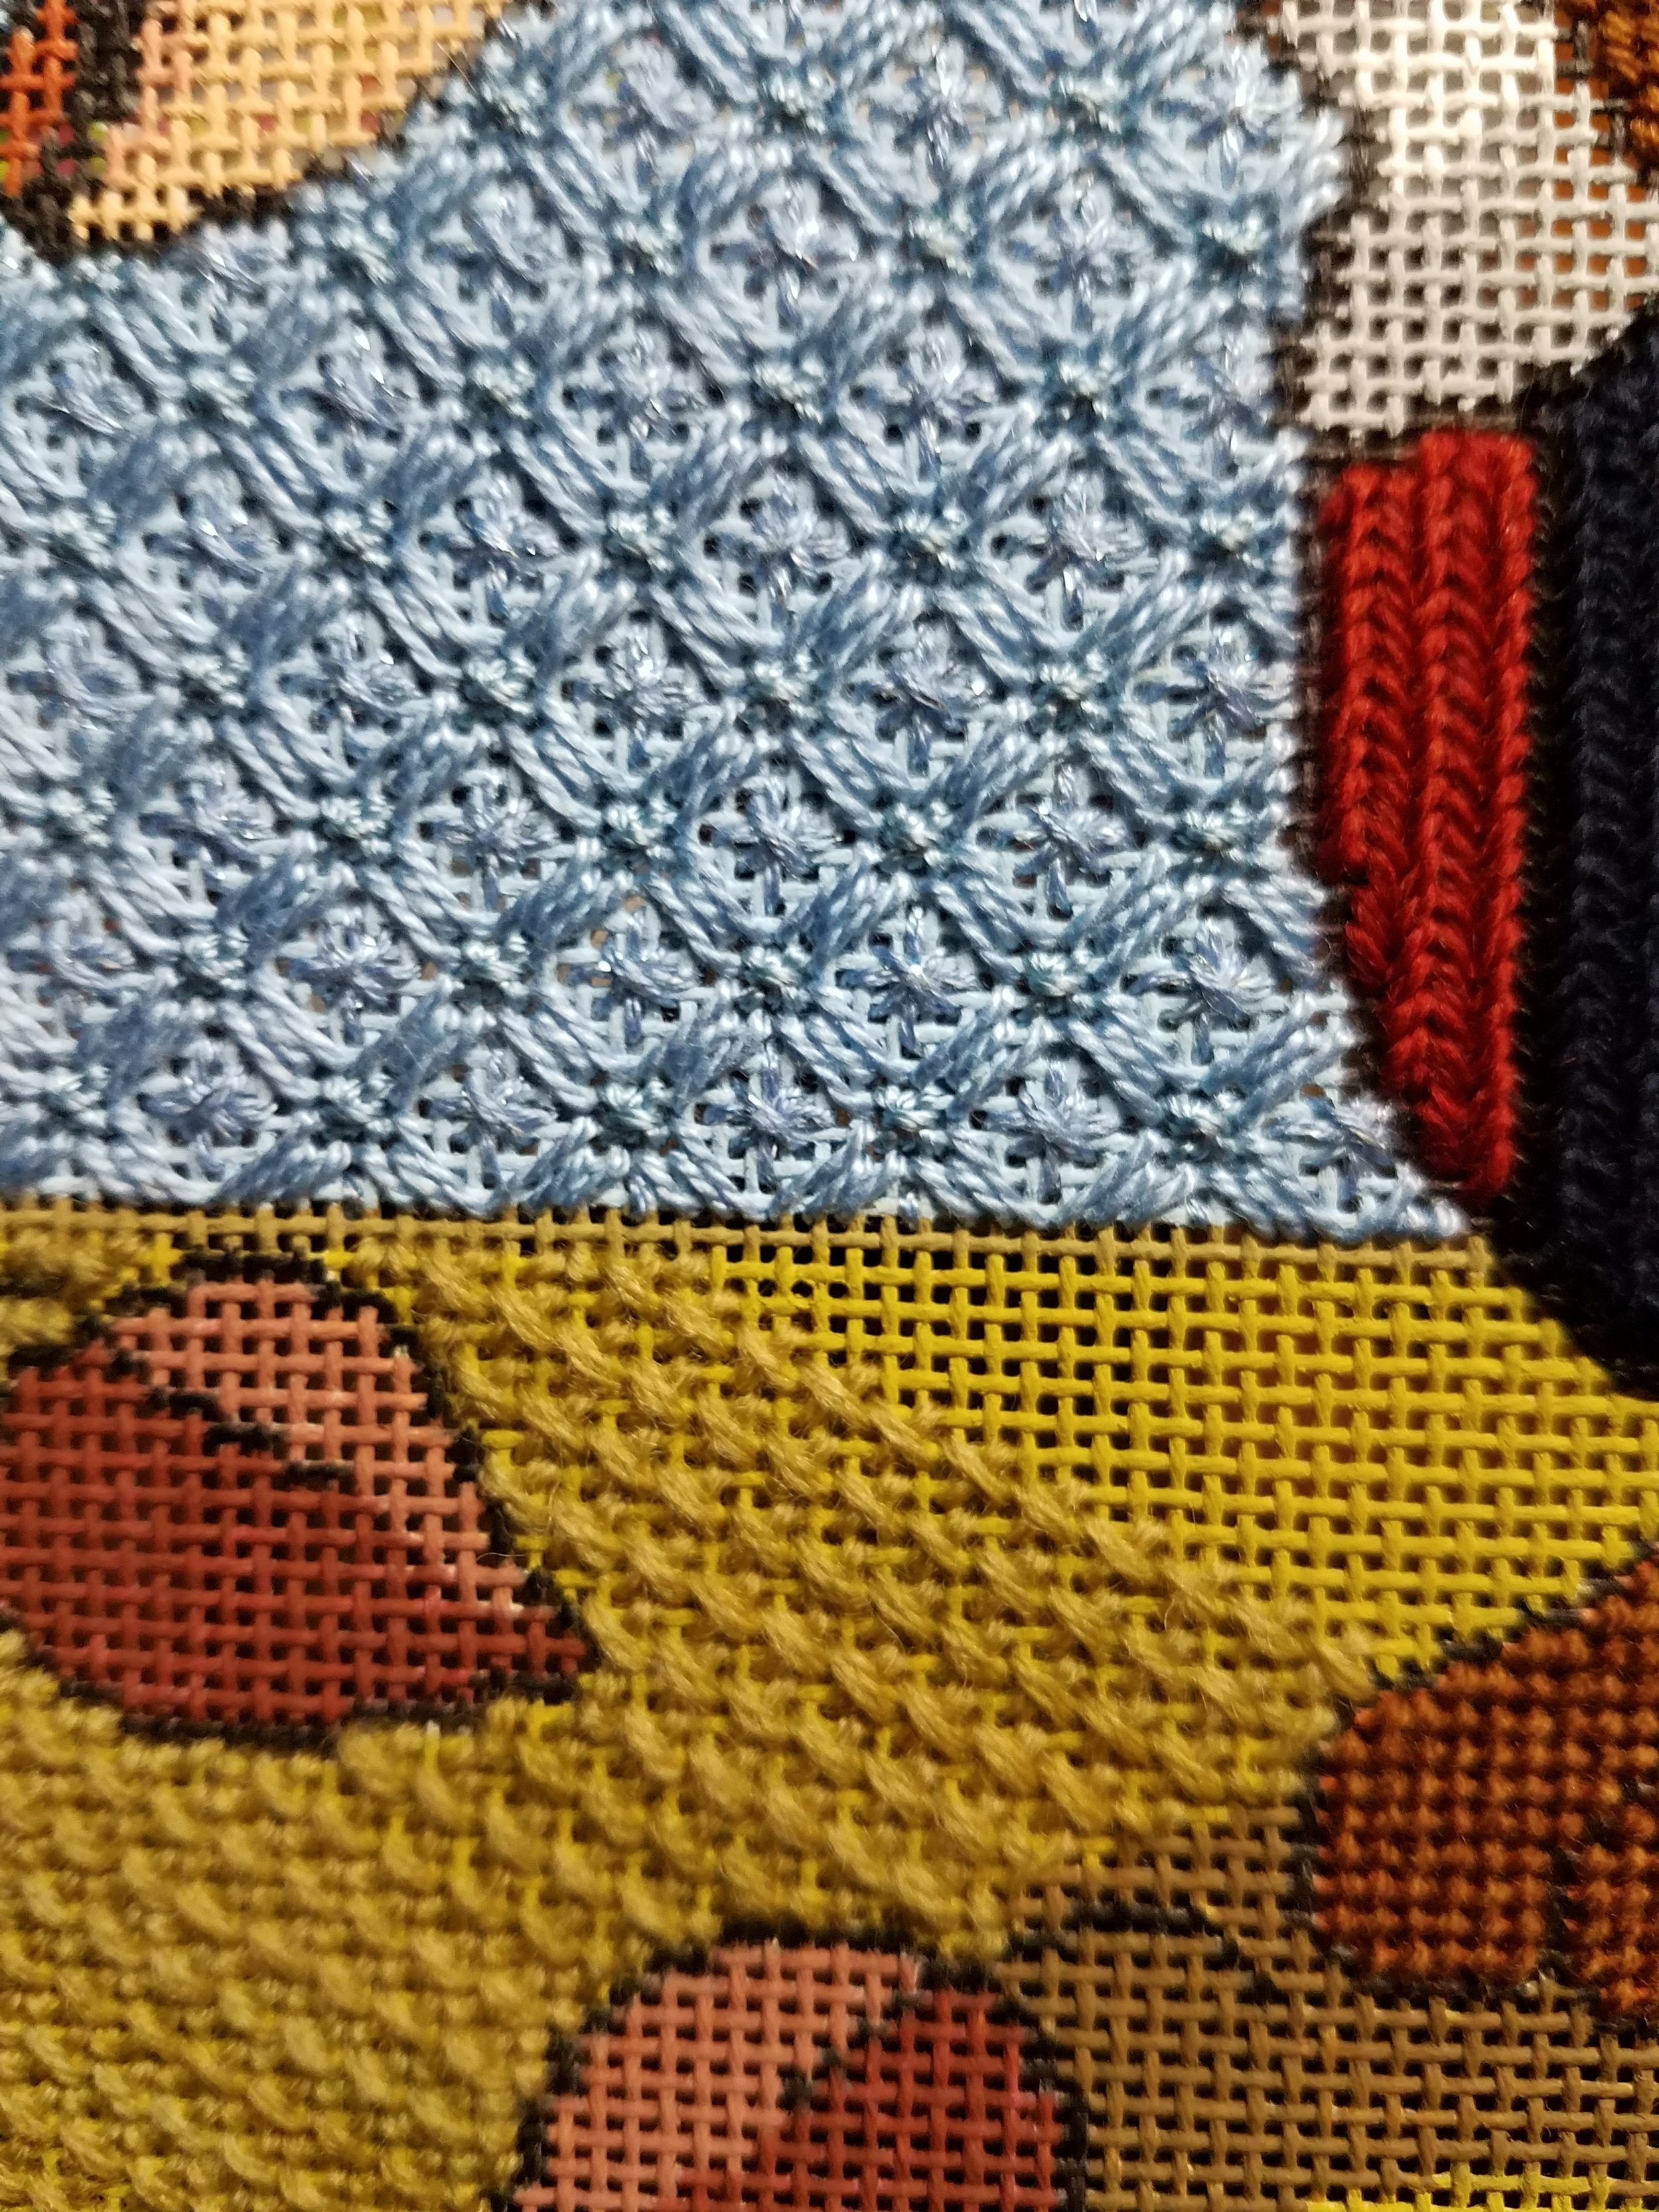 Close up of backgrounds and sweater.